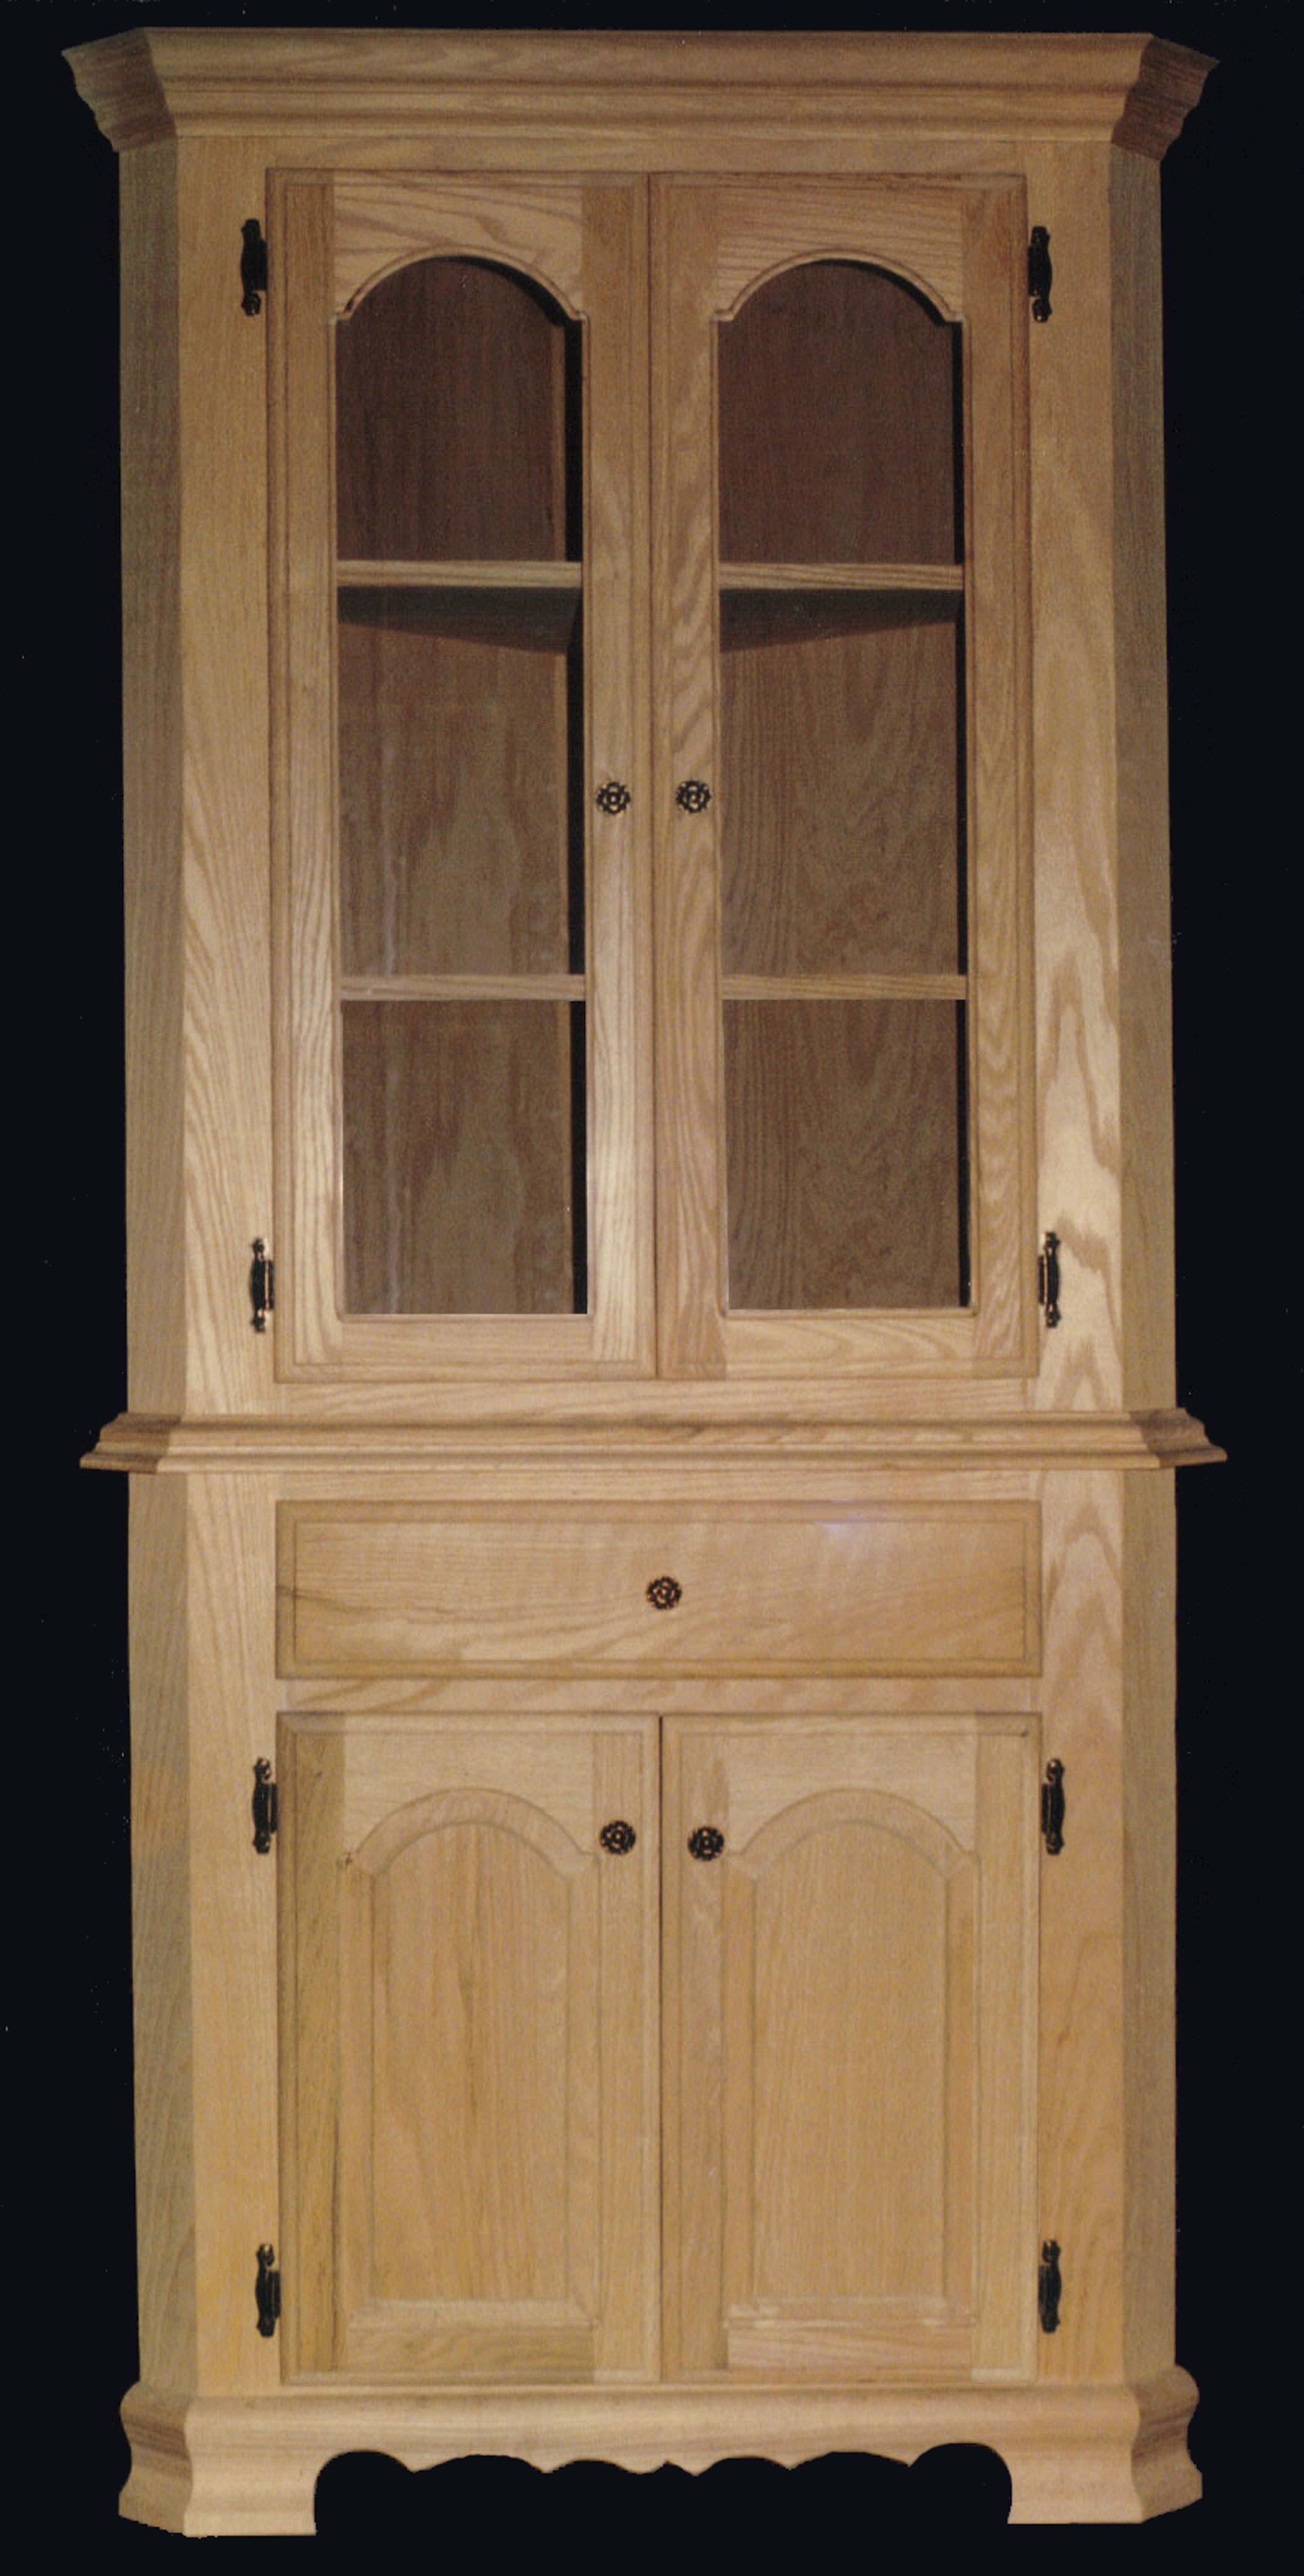 20 Corner Cabinets To Make A Clutter Free Bathroom Space: Fitak Custom Woodworking Inc., Napanee, Ontario, Kitchen